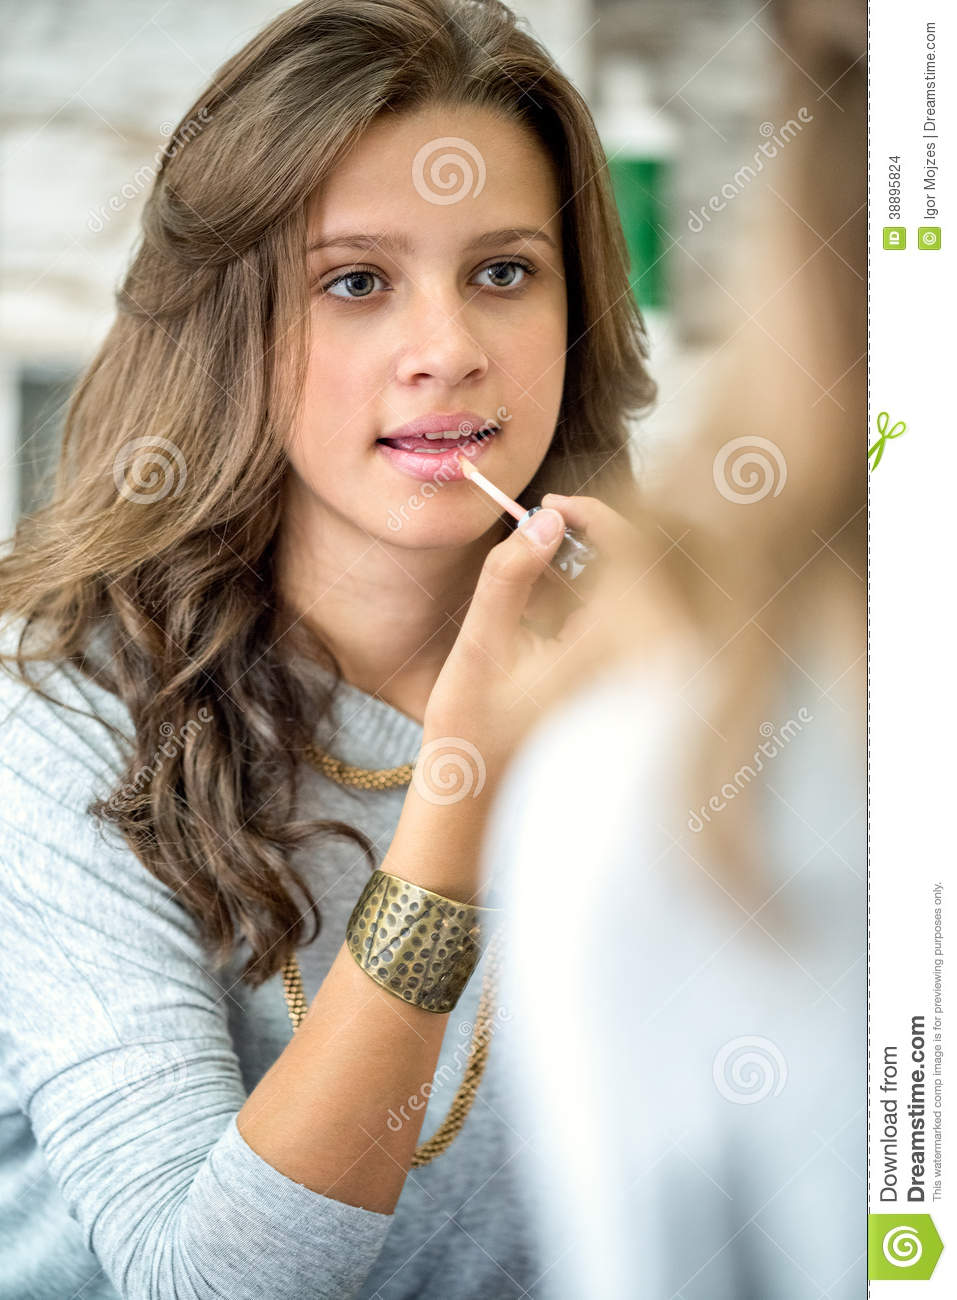 Beautiful Teen Girl With Lip Gloss Stock Photo